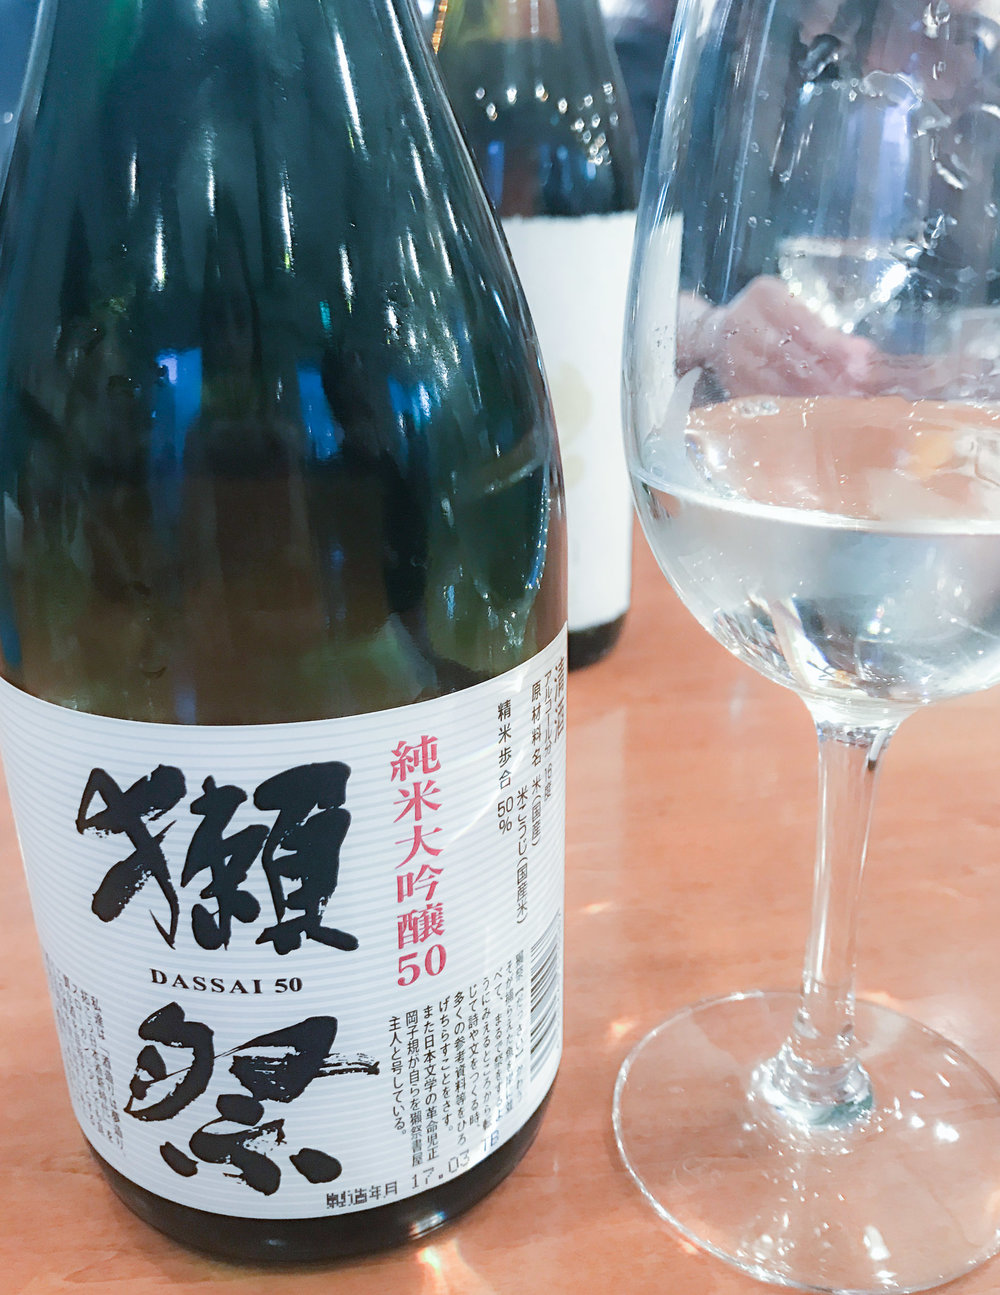 This is one of my favorite brands of sake.